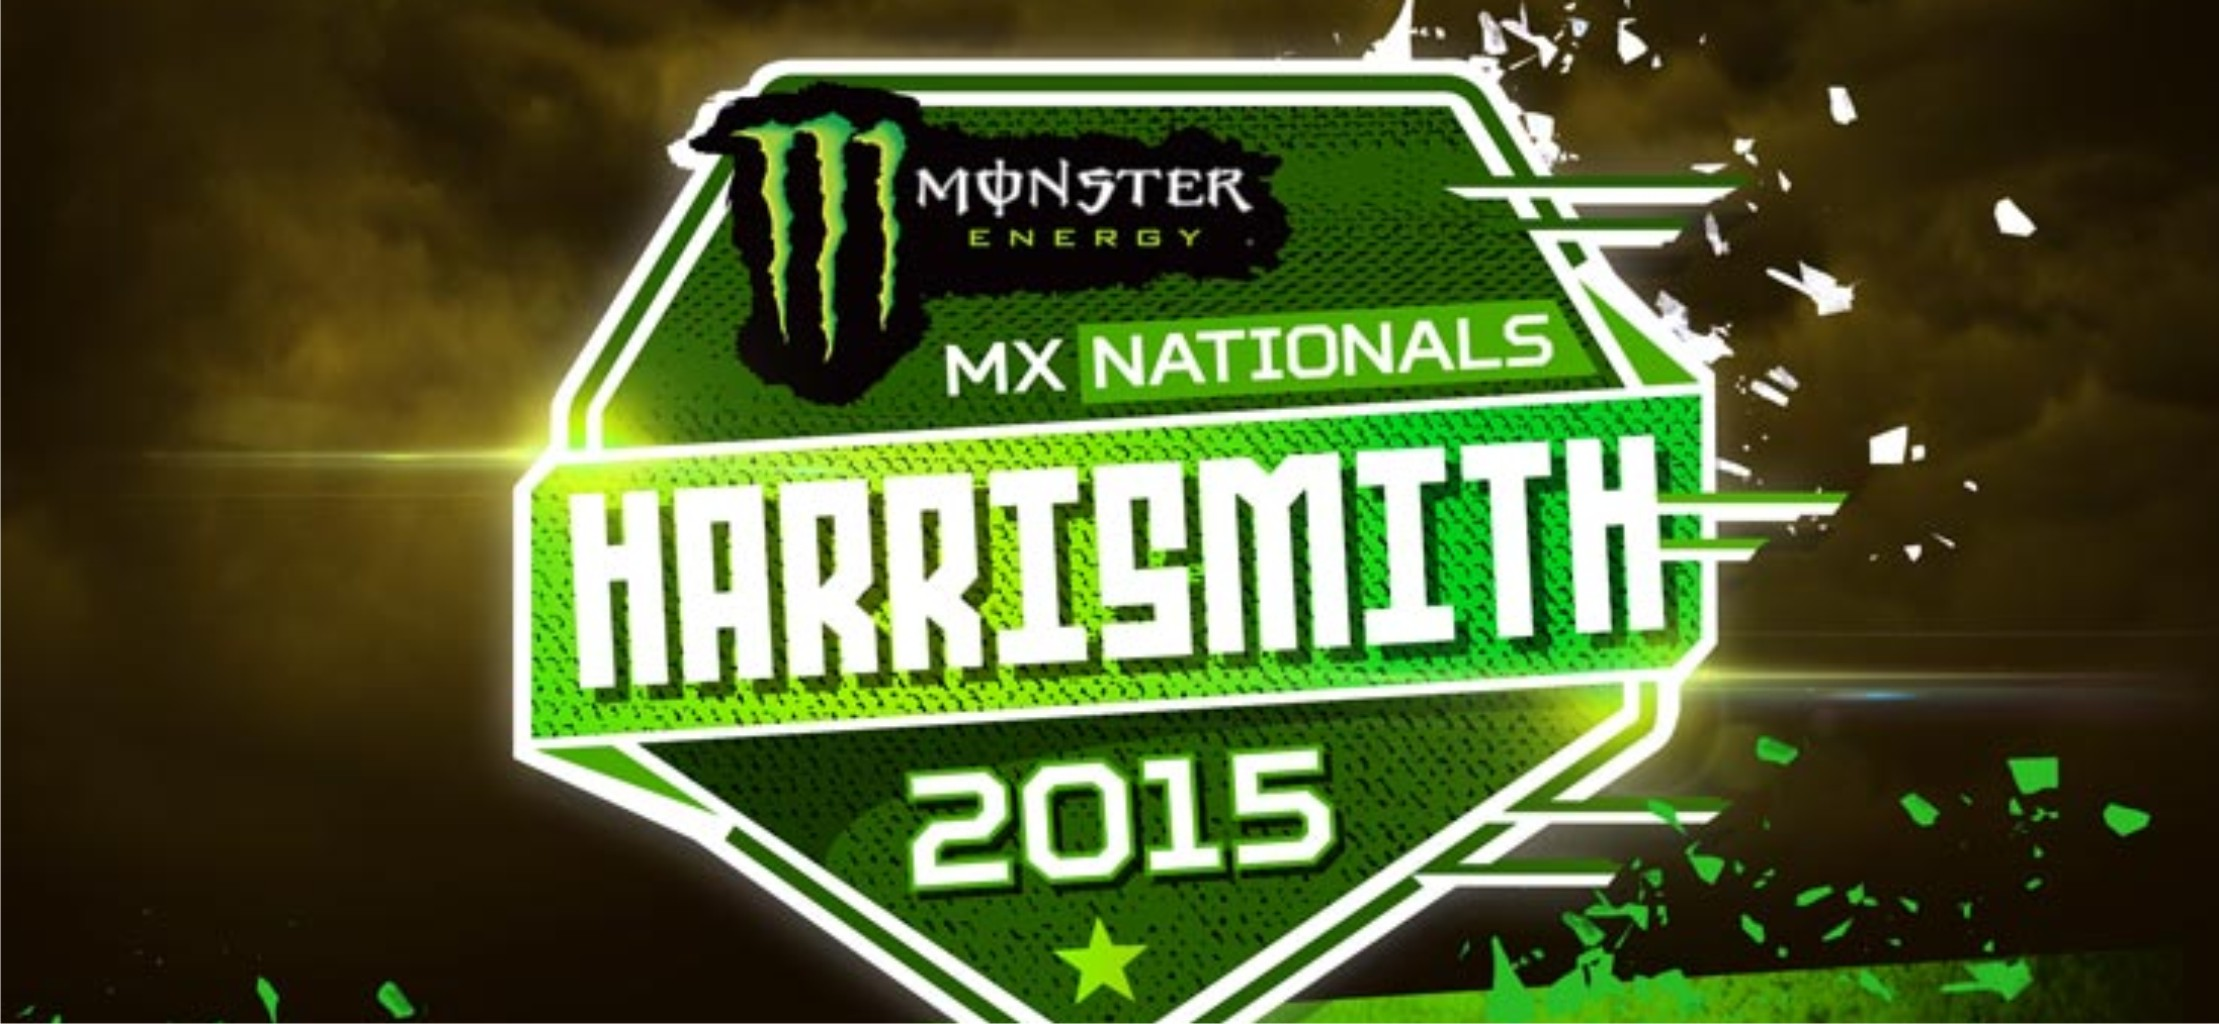 The 2015 Motocross Nationals are about to kick off